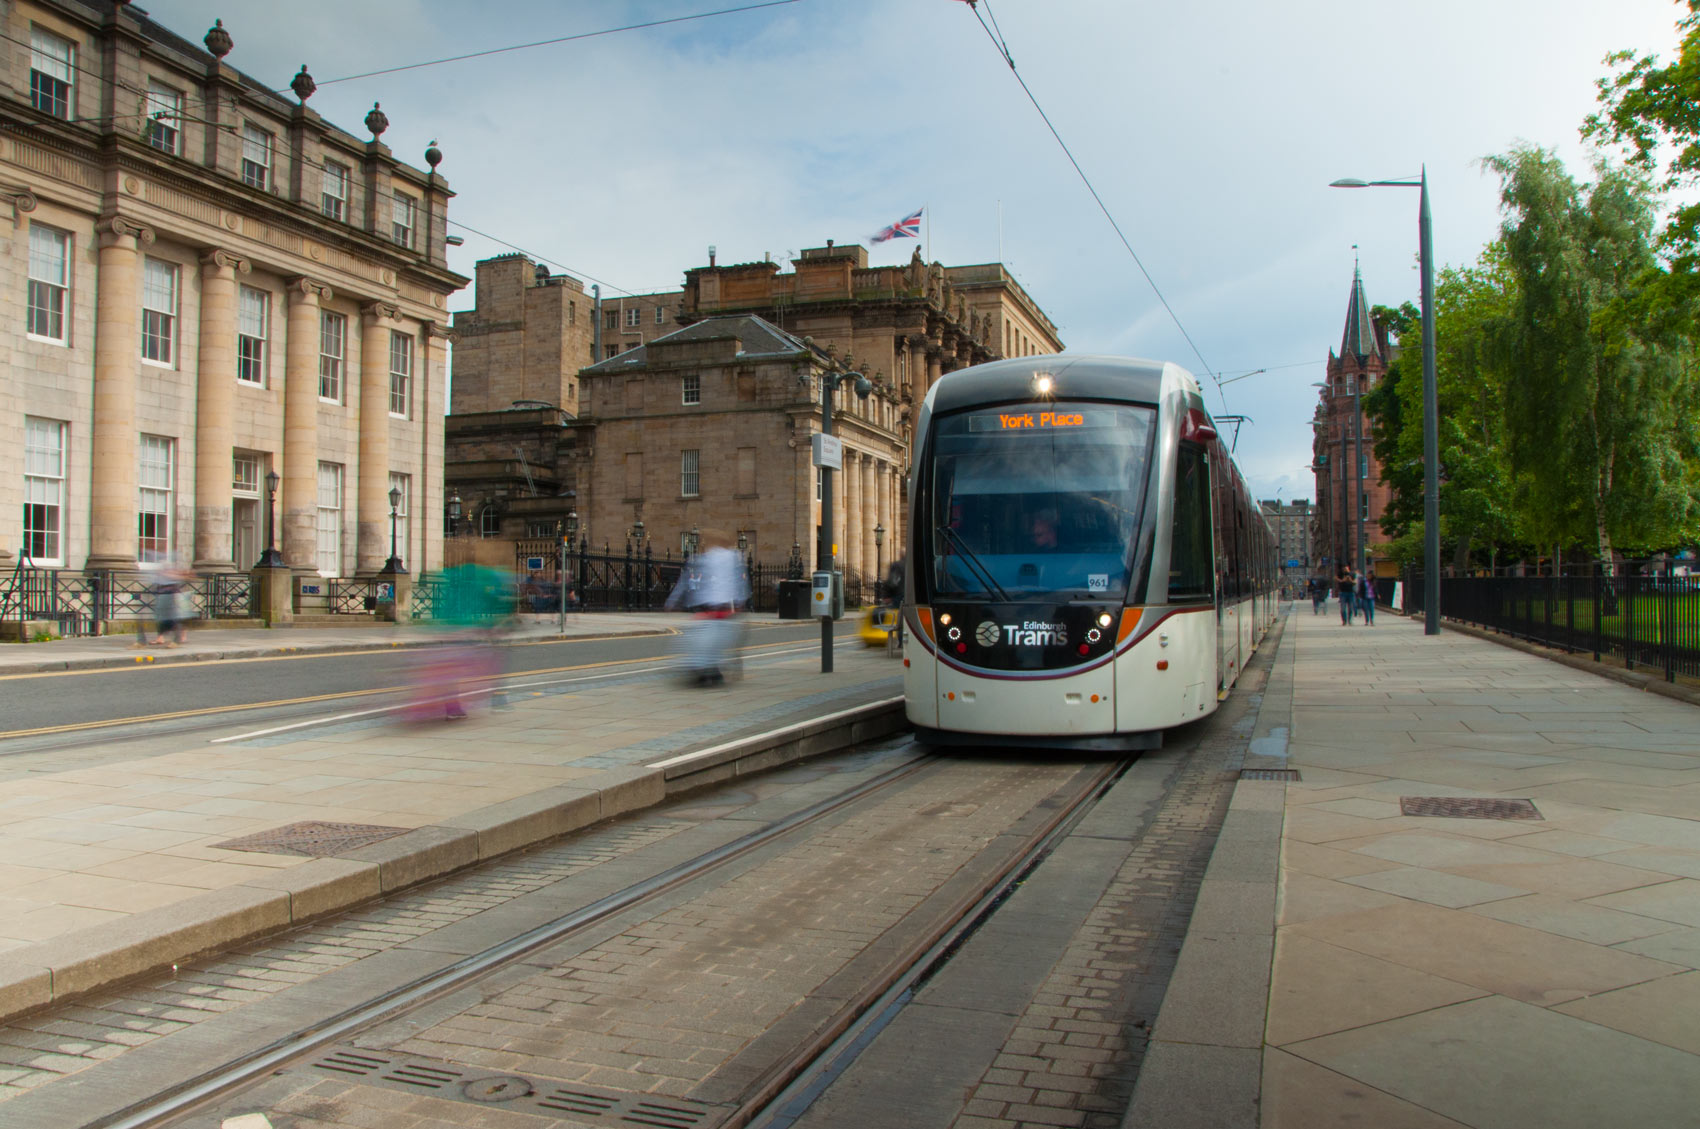 1.slideshow.scottish.stone.providers.tradstocks.direct.from.the.quarry.don.buy.indian.sandstone.buy.stone.MADE.OF.SCOTLAND.edinburgh.tram.jpg